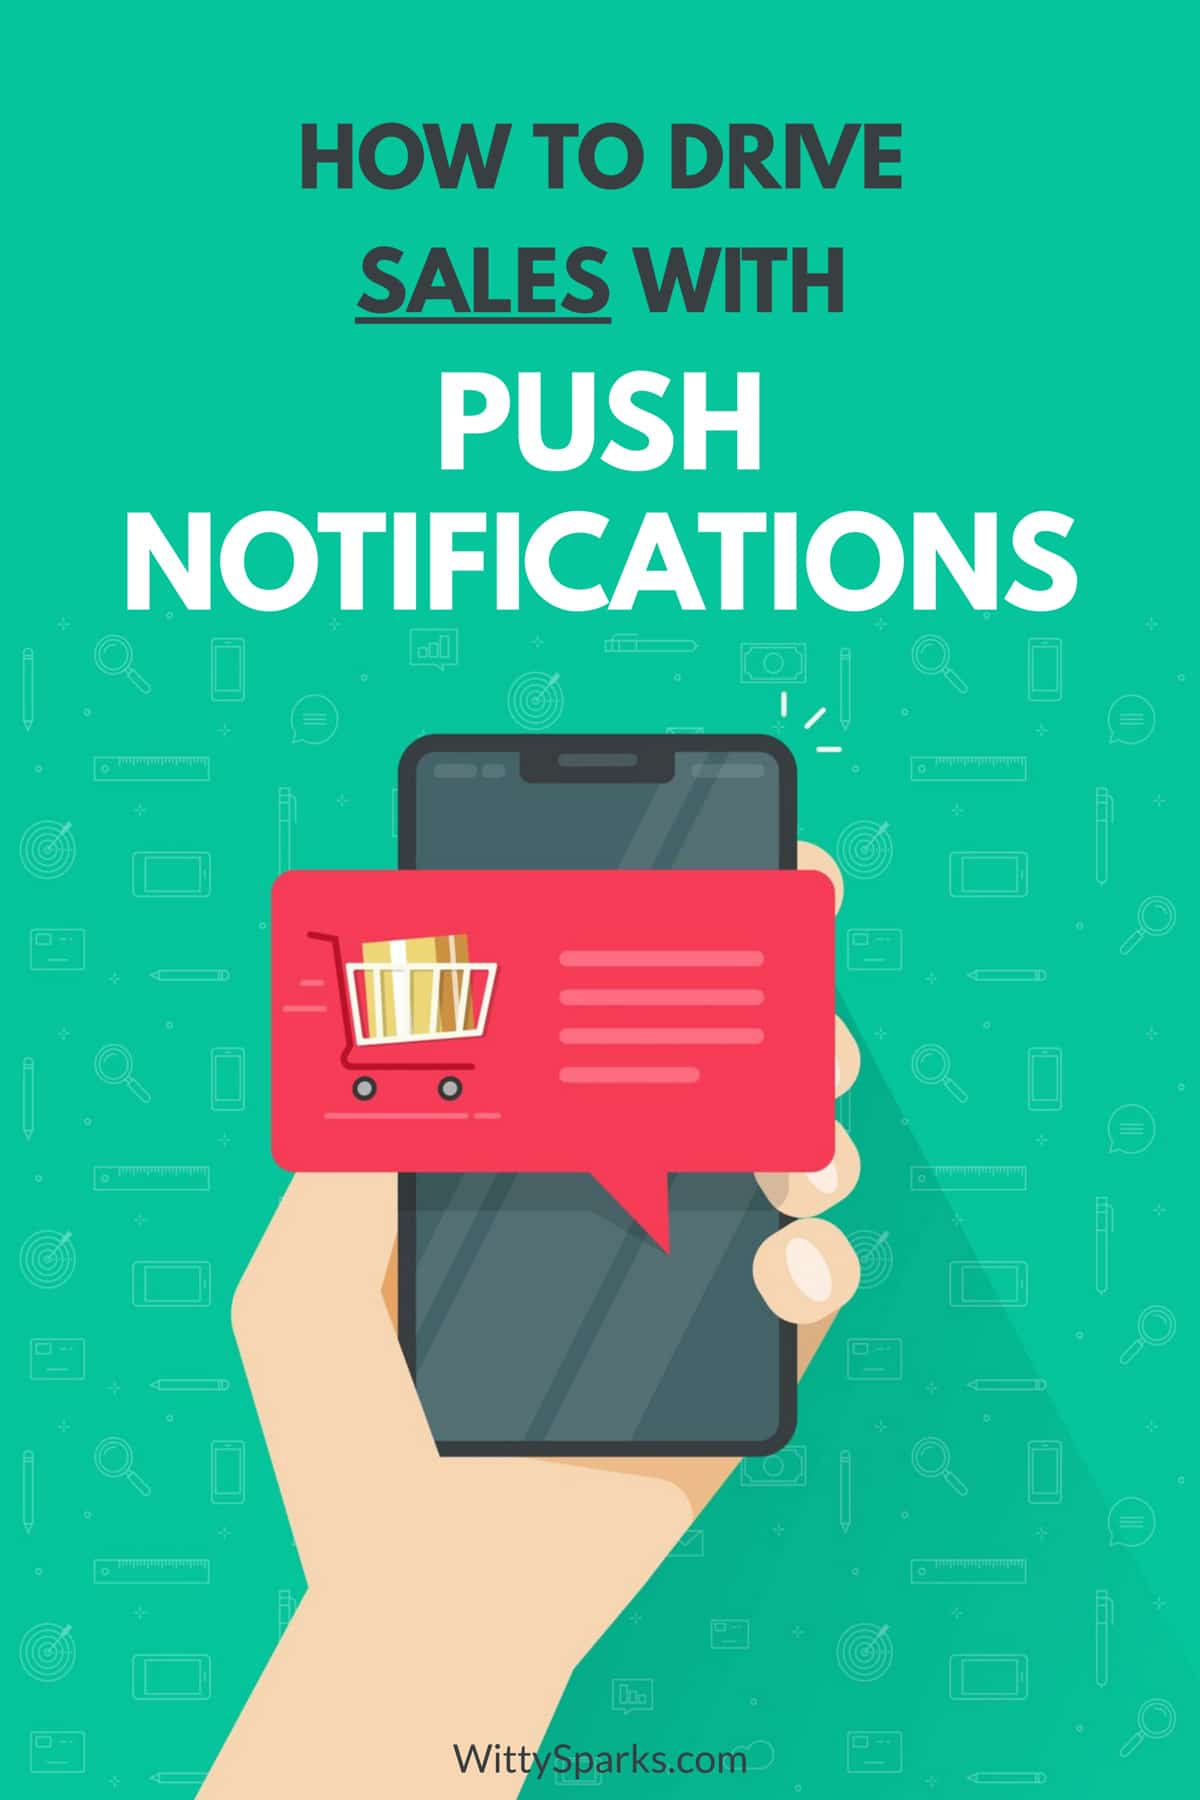 Sales with push notifications